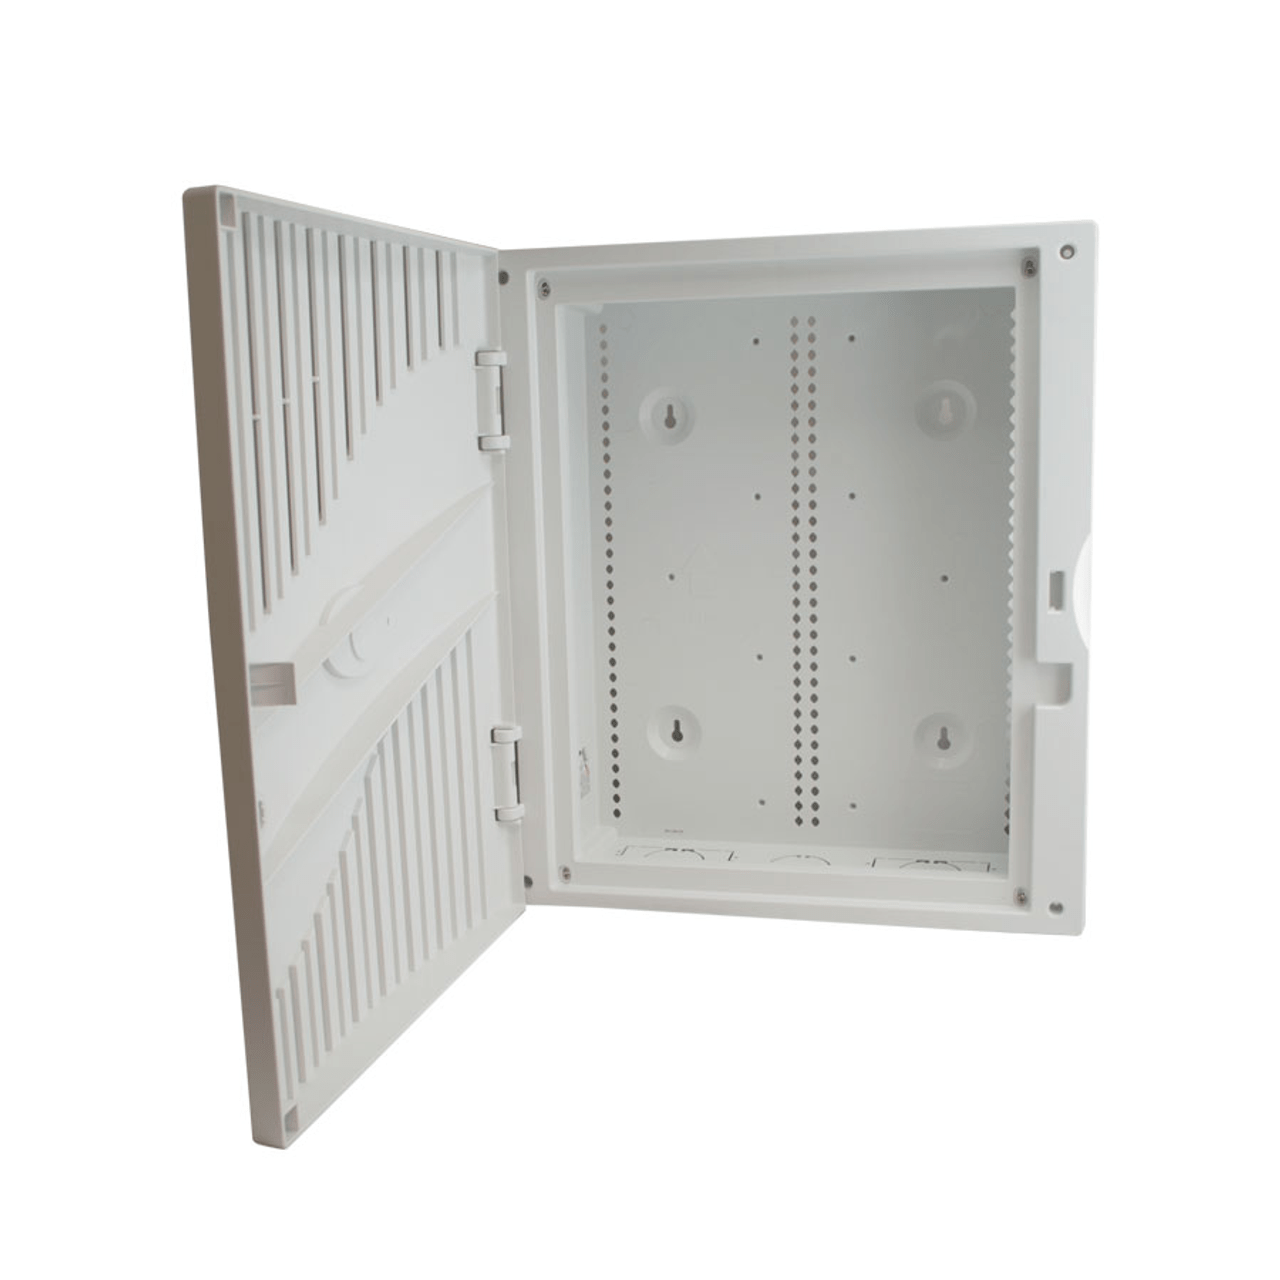 hcc 18 kit ecpl 18 plastic in wall or on wall structured wiring enclosure [ 900 x 900 Pixel ]